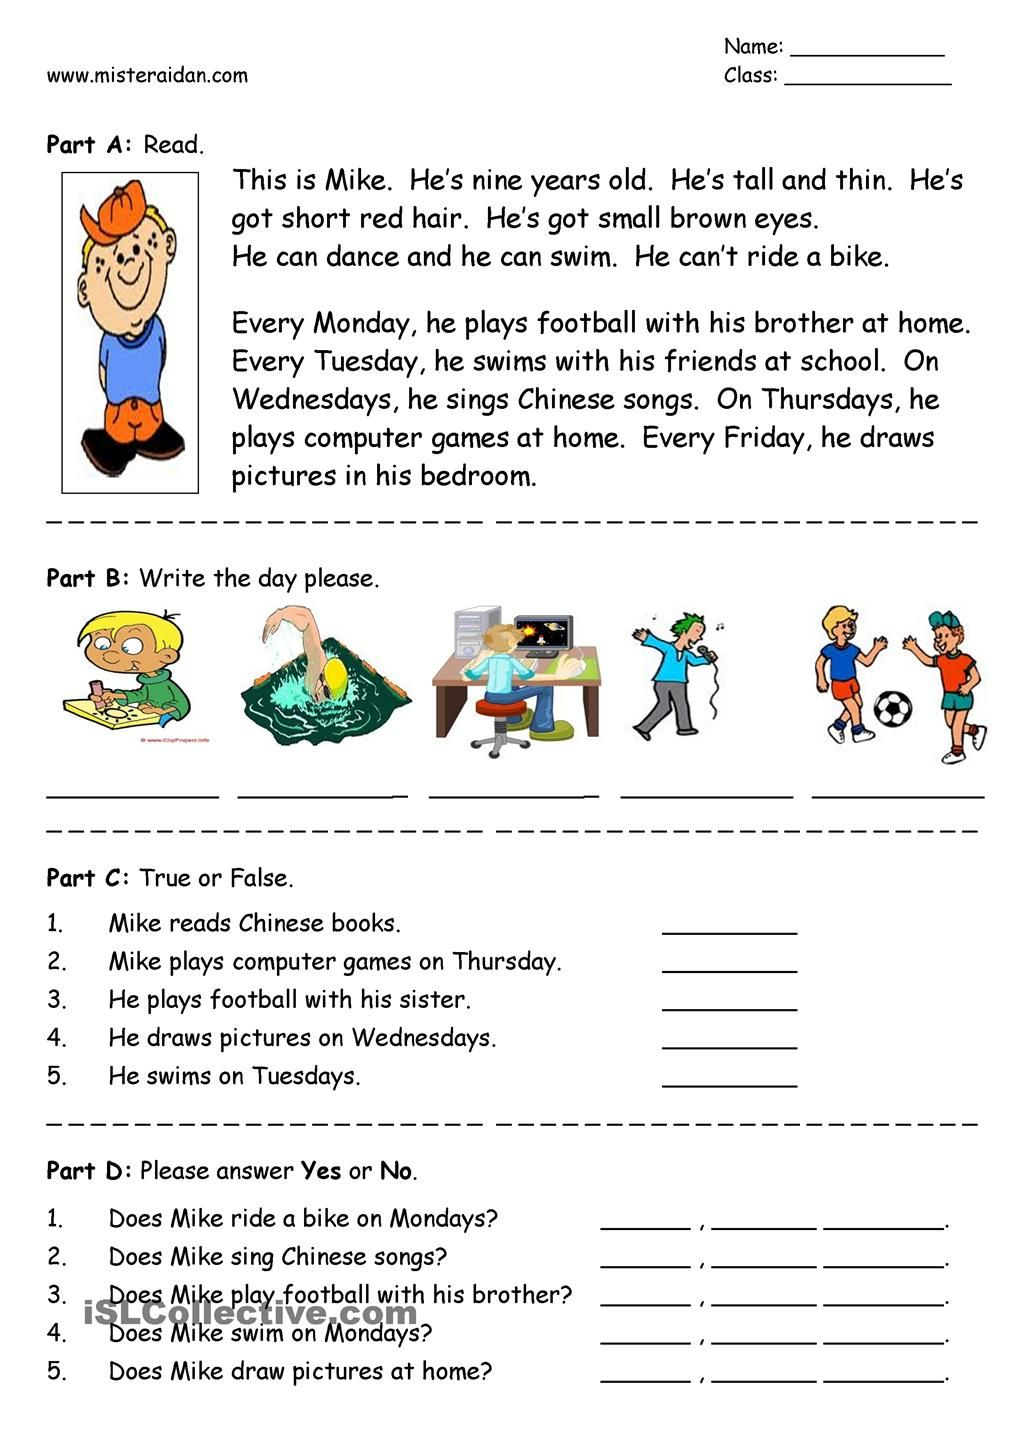 Workbooks year 2 comprehension worksheets free : Days of the Week - easy reading comprehension | Для ...